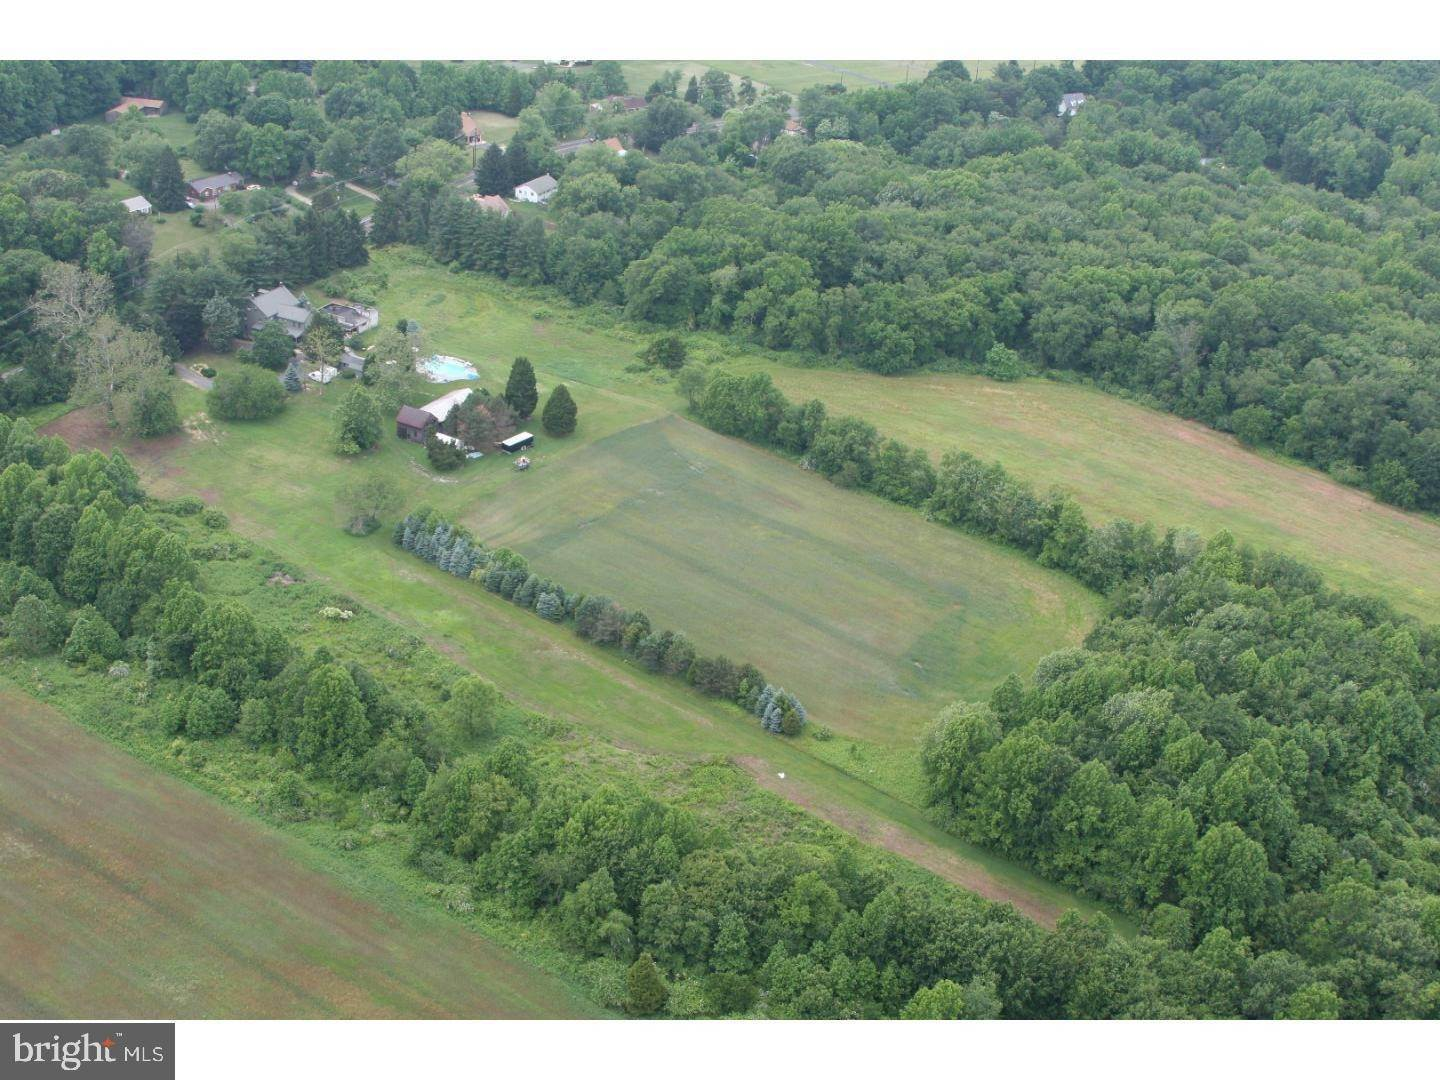 4. Farm for Sale at 212 MEDFORD MOUNT HOLLY Road Medford, New Jersey 08055 United States